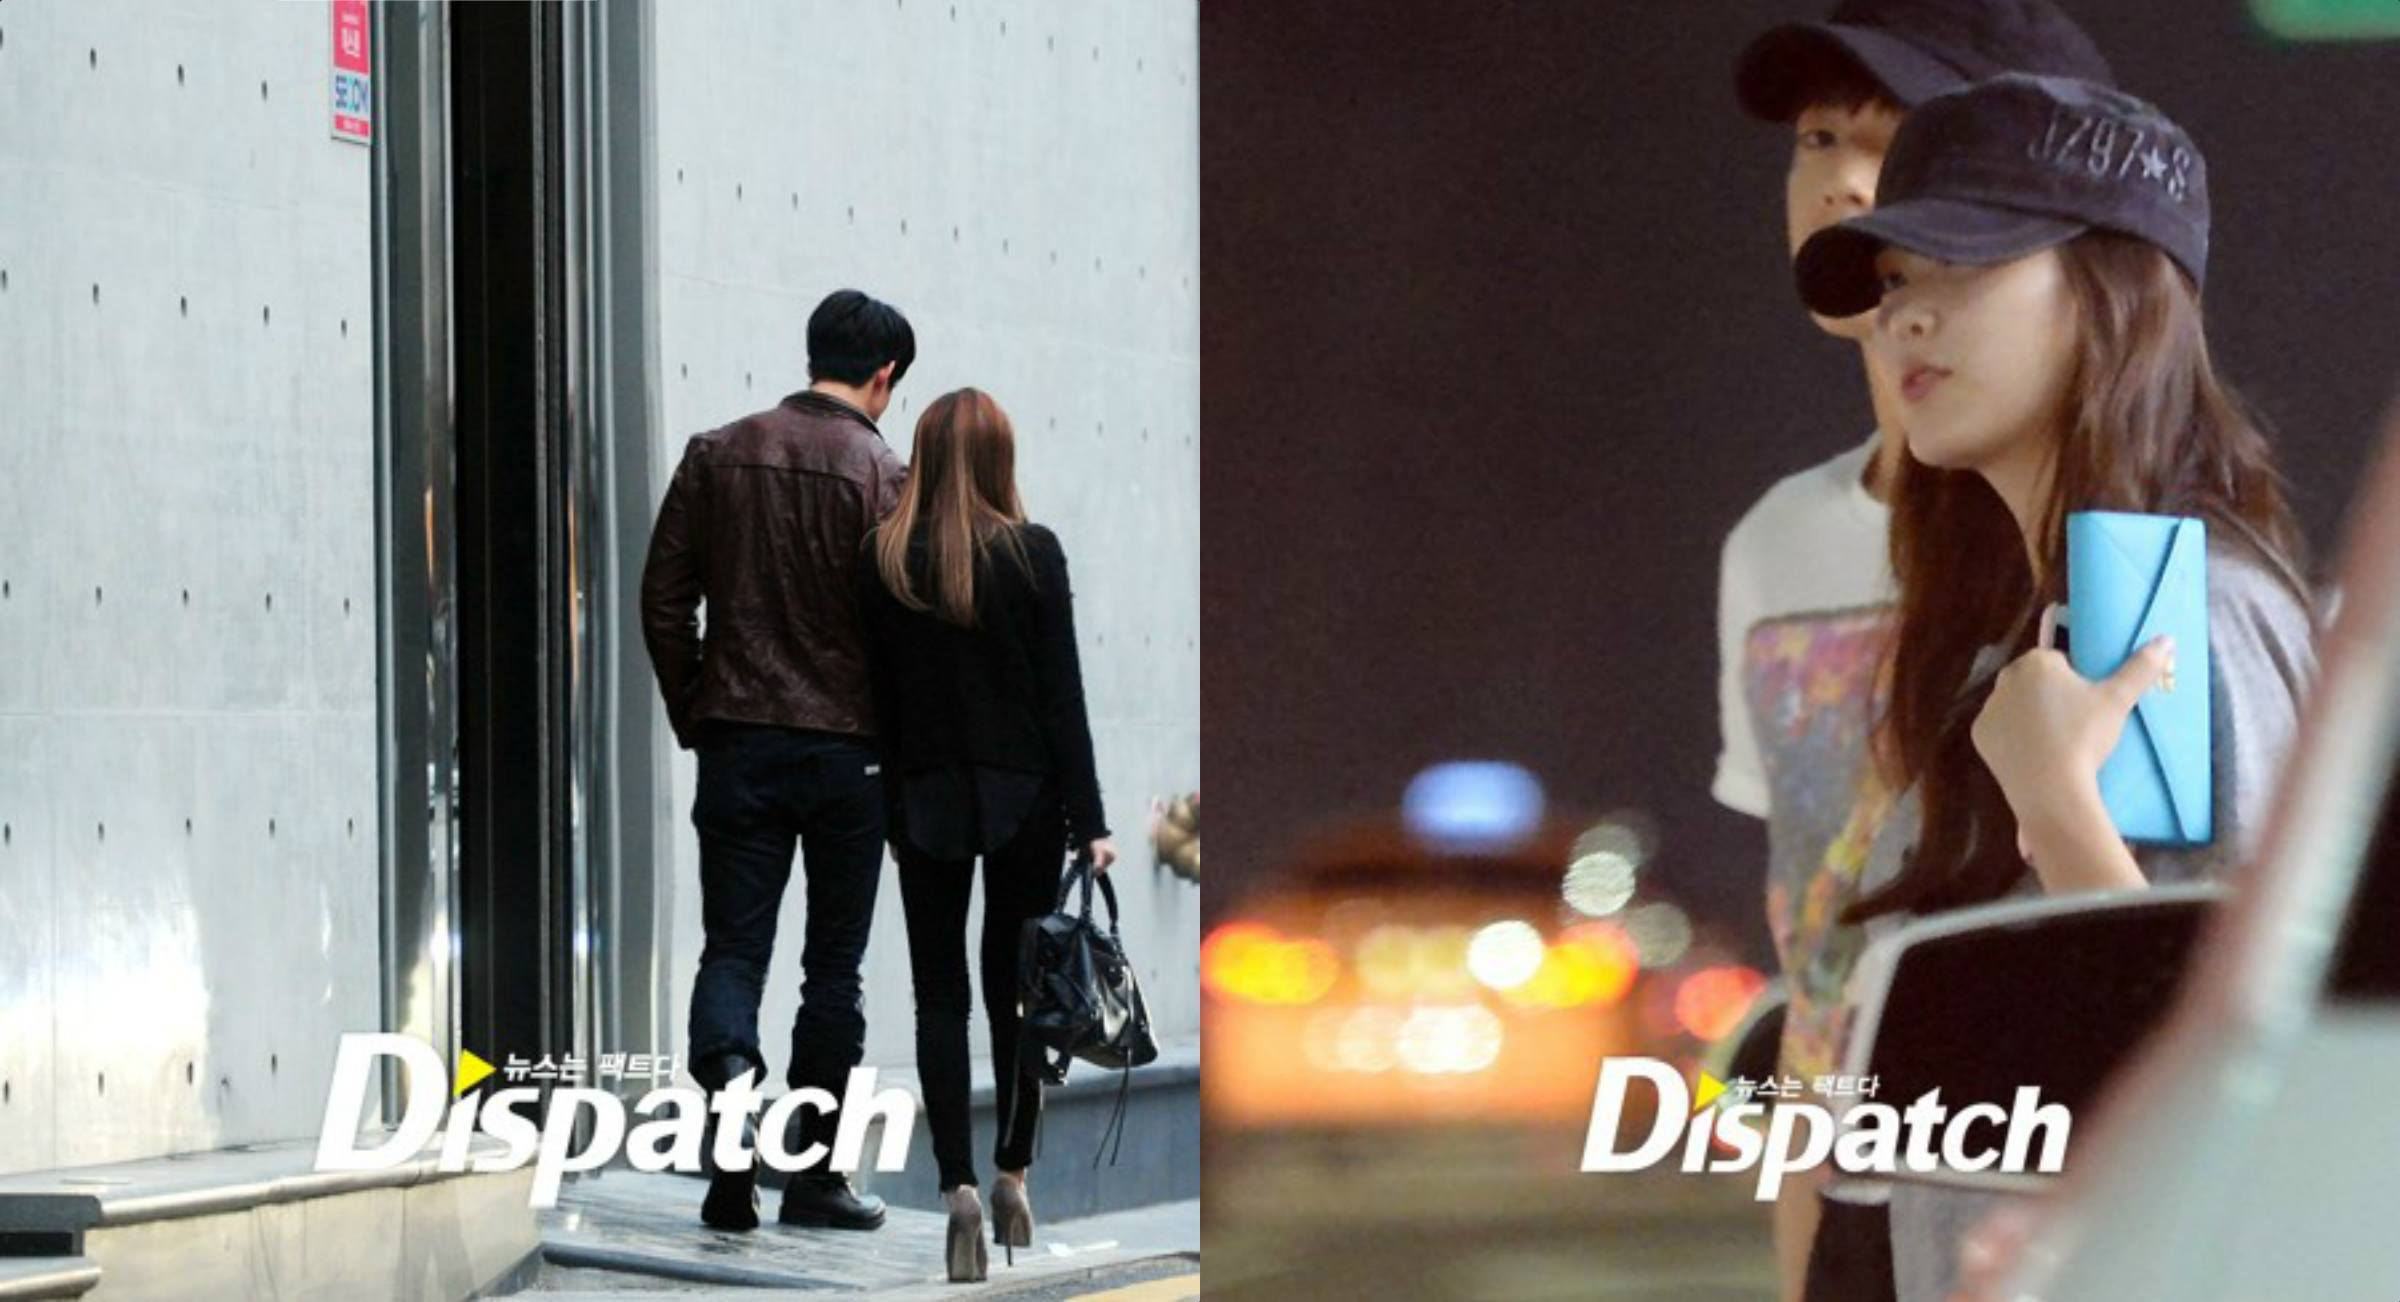 dispatch kpop dating 2015